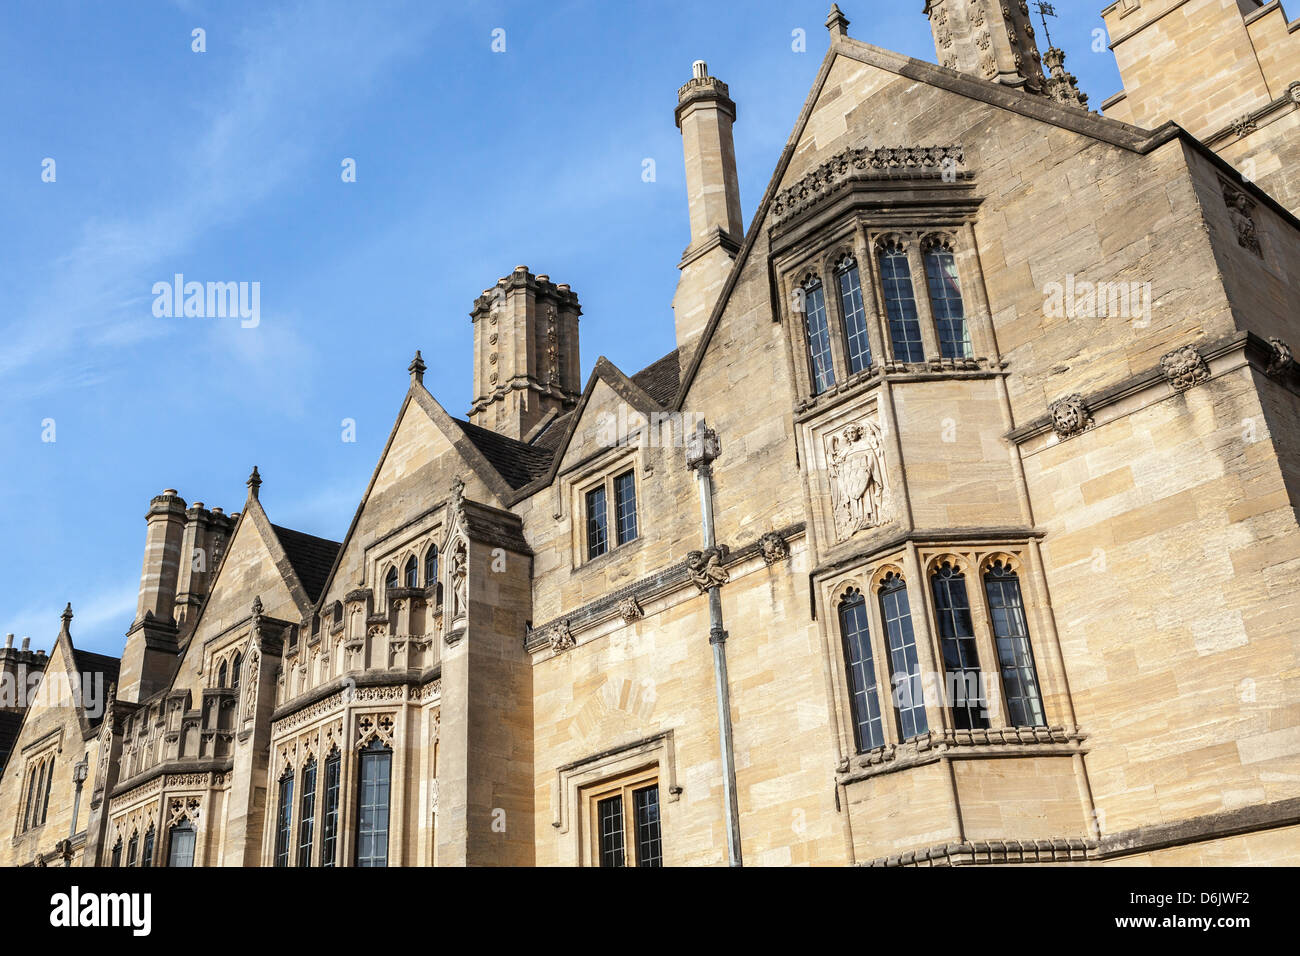 Student accommodation in Magdalen College, Oxford, Oxfordshire, England, United Kingdom, Europe - Stock Image